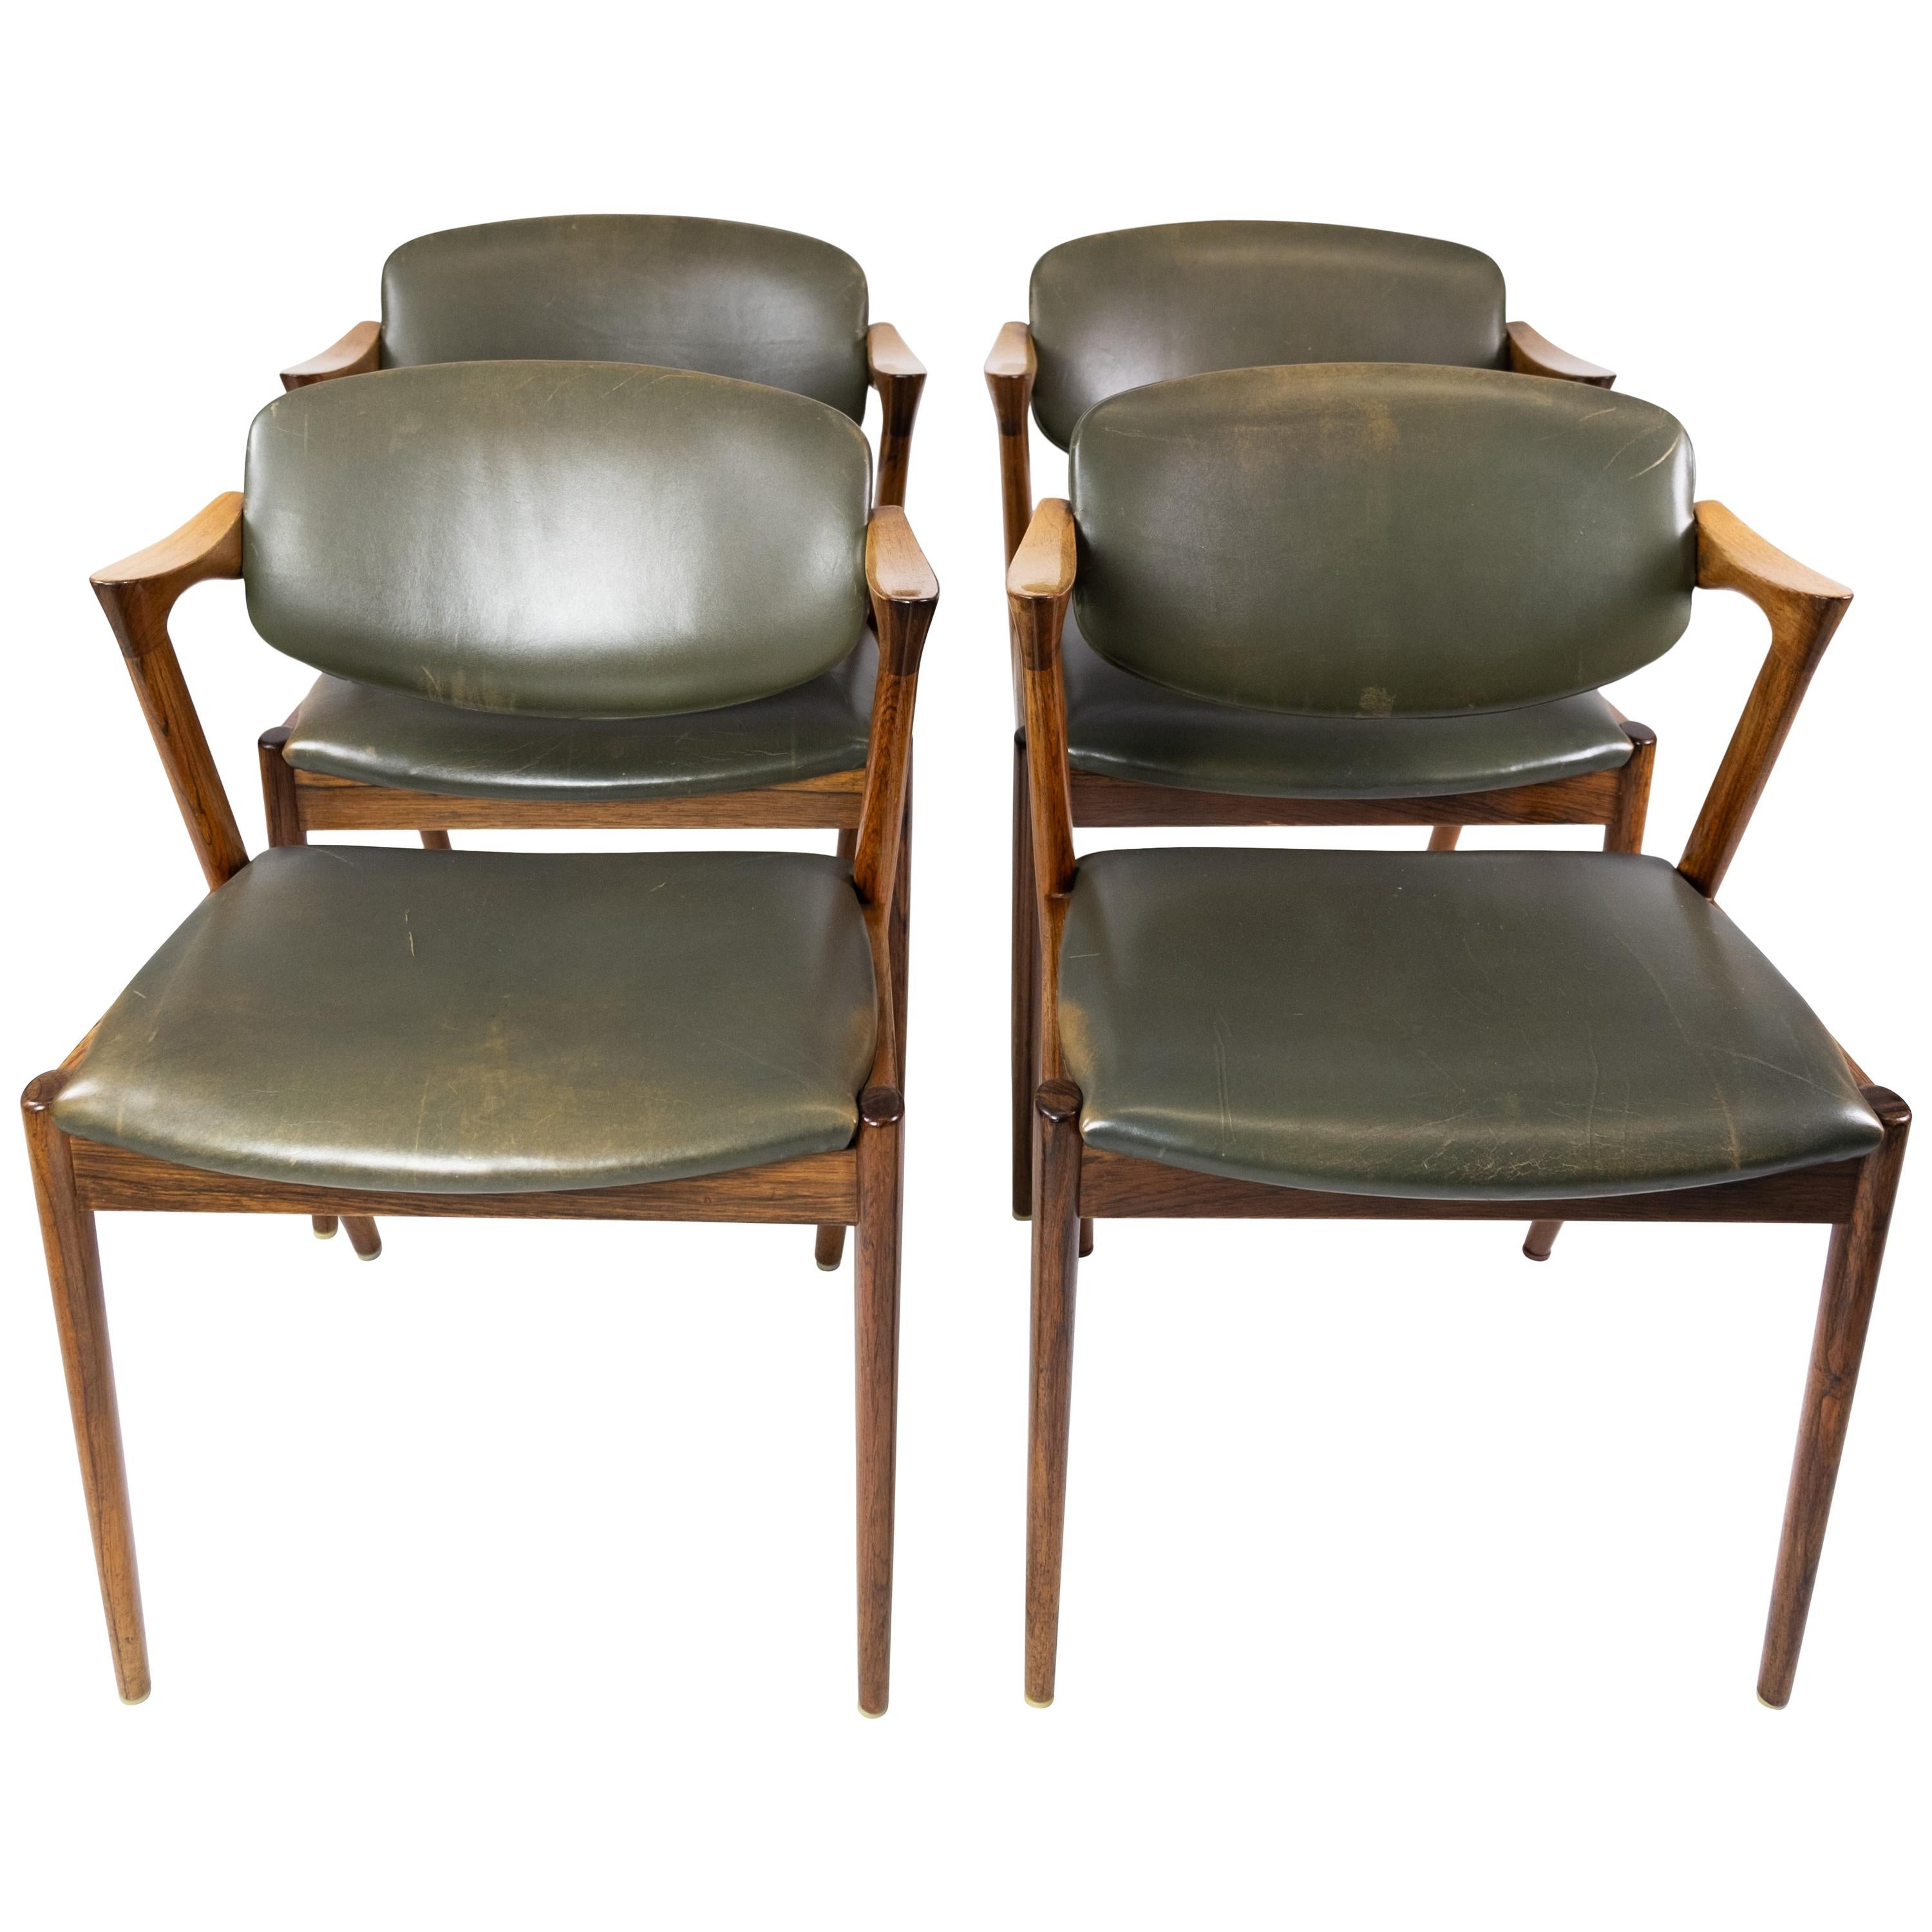 Set of 4 Dining Chairs, Model 42, Designed by Kai Kristiansen, 1960s